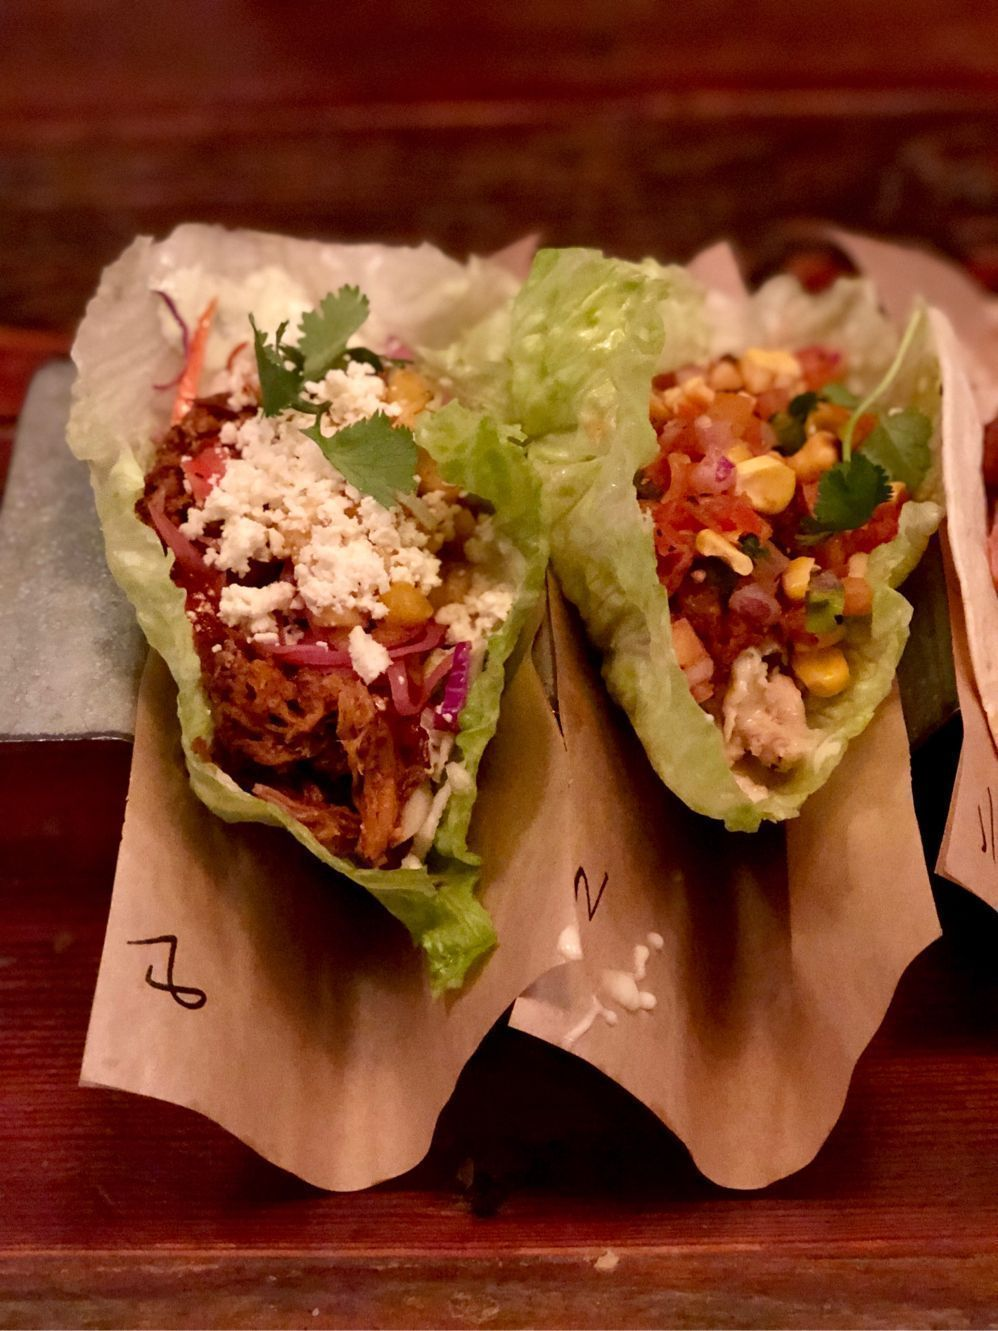 We are taco foodies! Whenever my sons and I travel